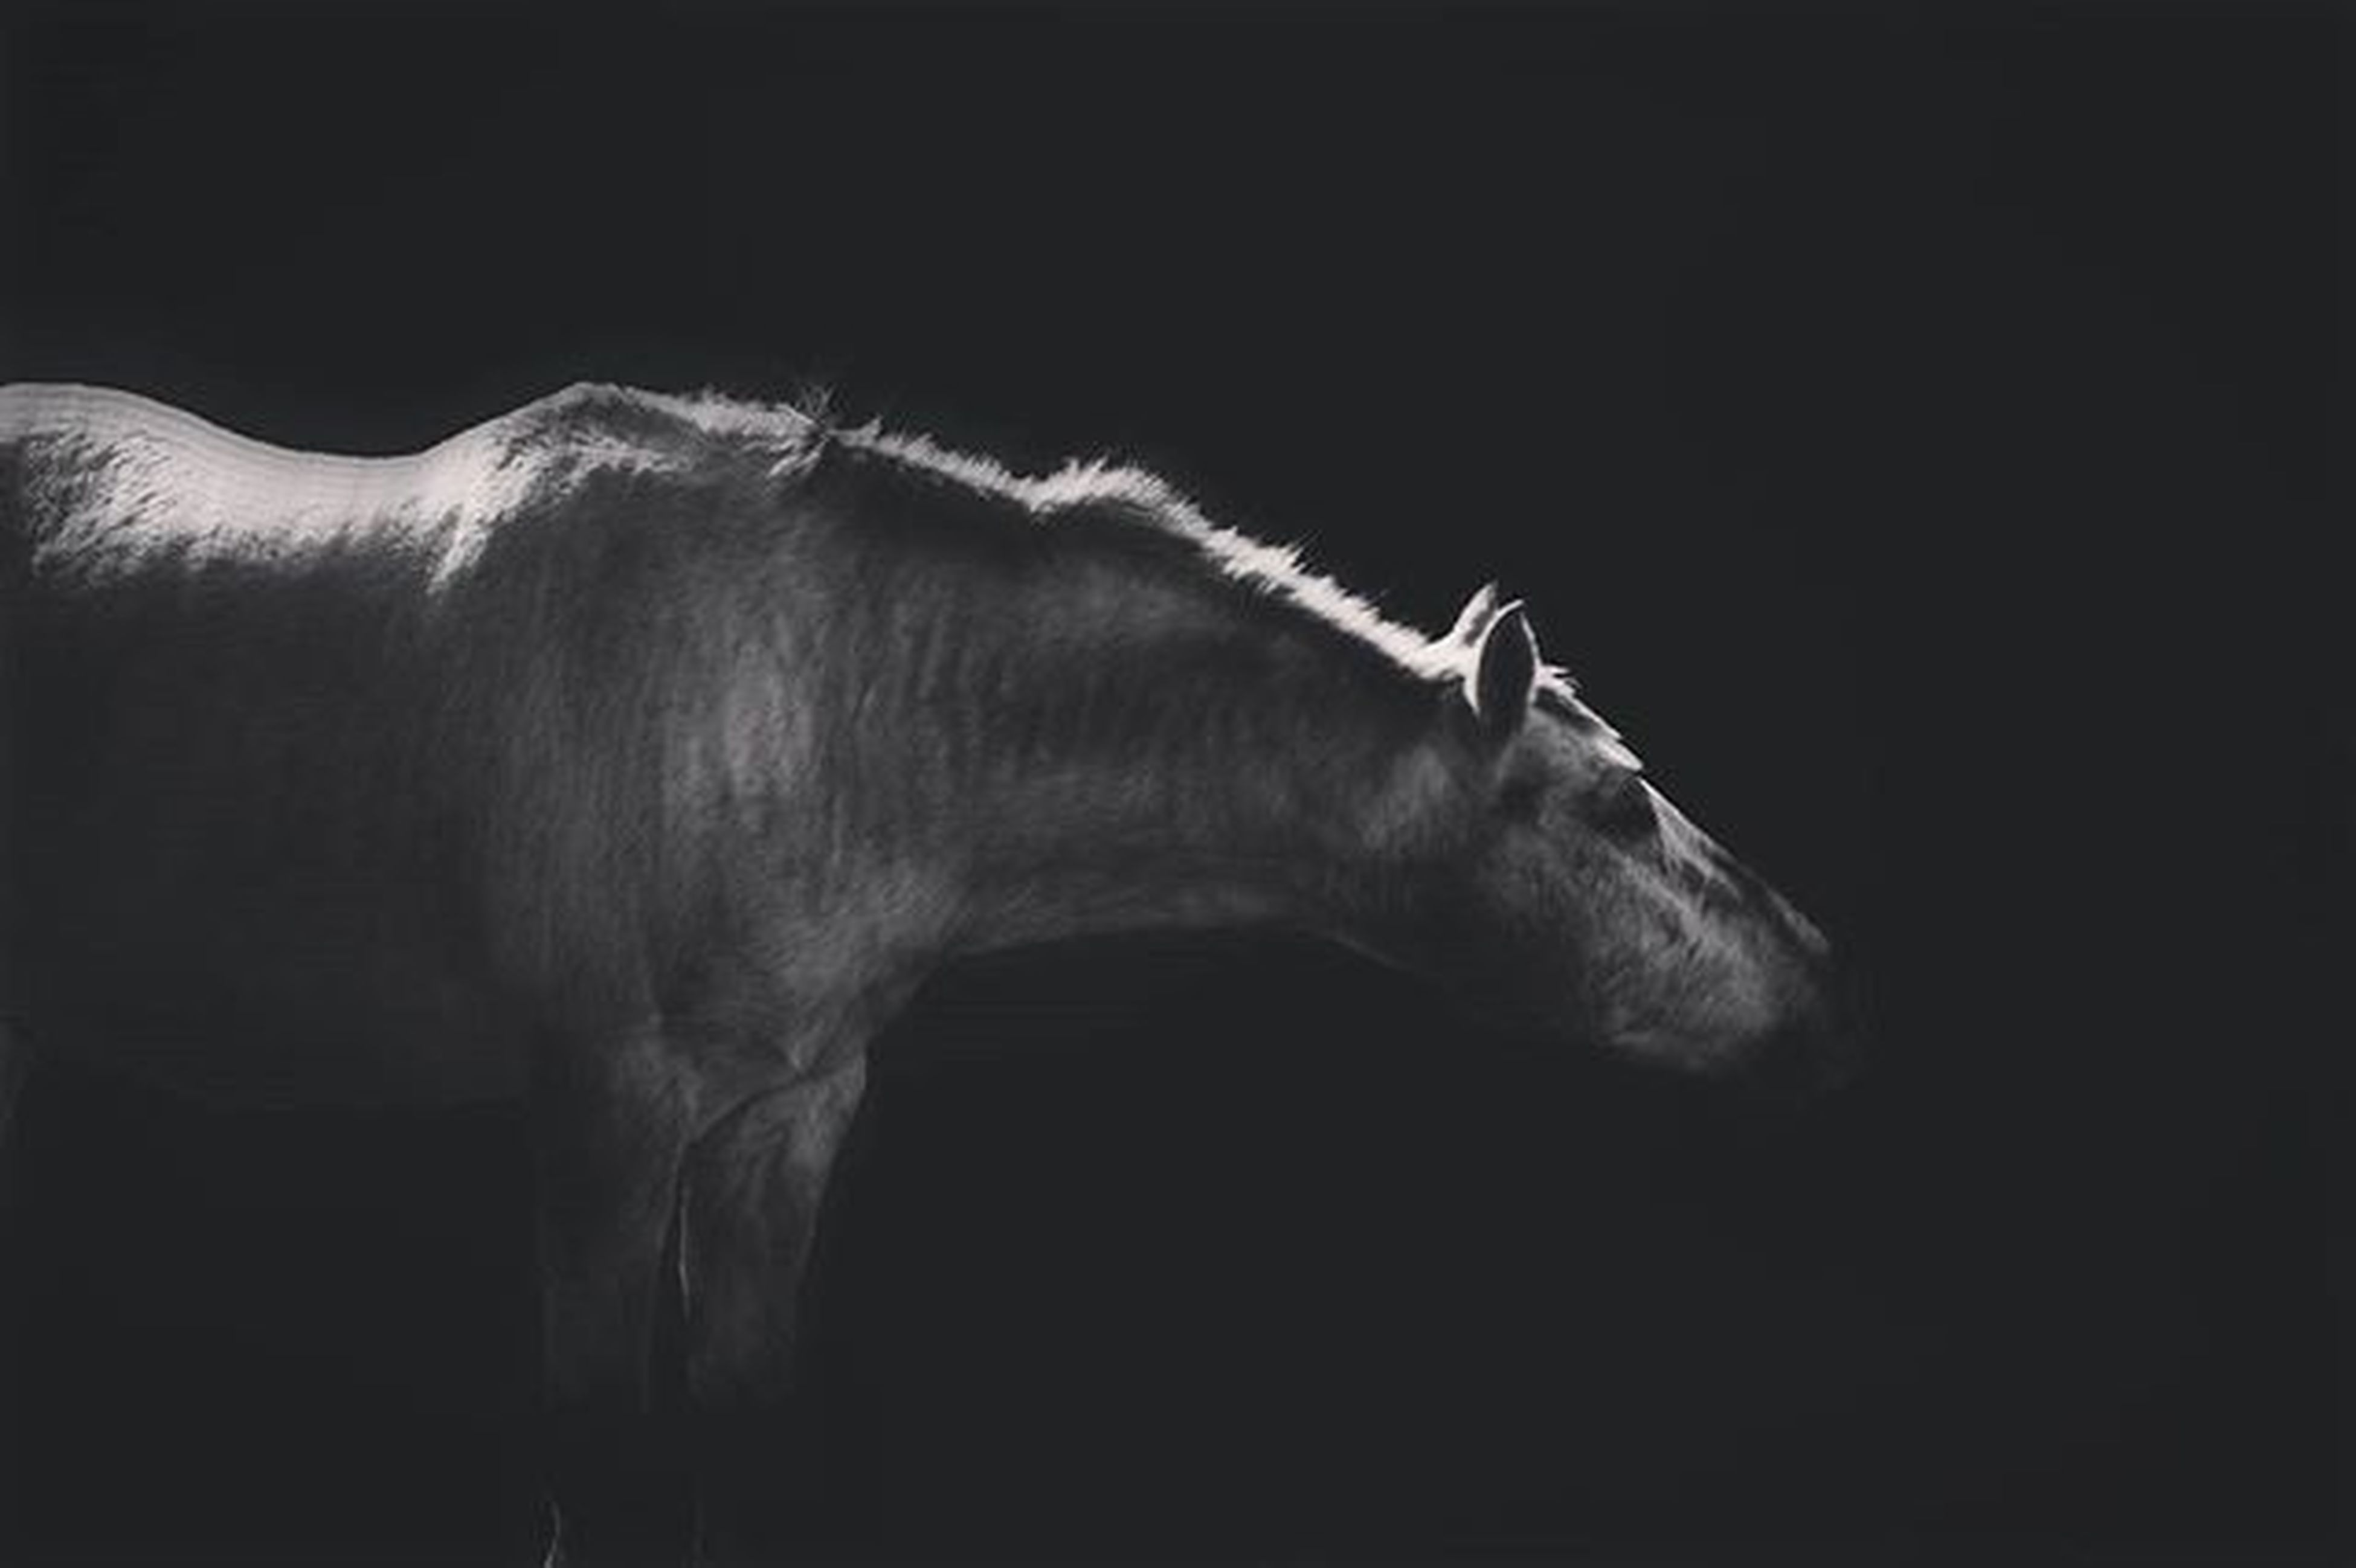 animal themes, horse, one animal, mammal, copy space, herbivorous, livestock, domestic animals, wildlife, animals in the wild, animal body part, low angle view, night, clear sky, side view, animal head, dark, no people, zoology, black background